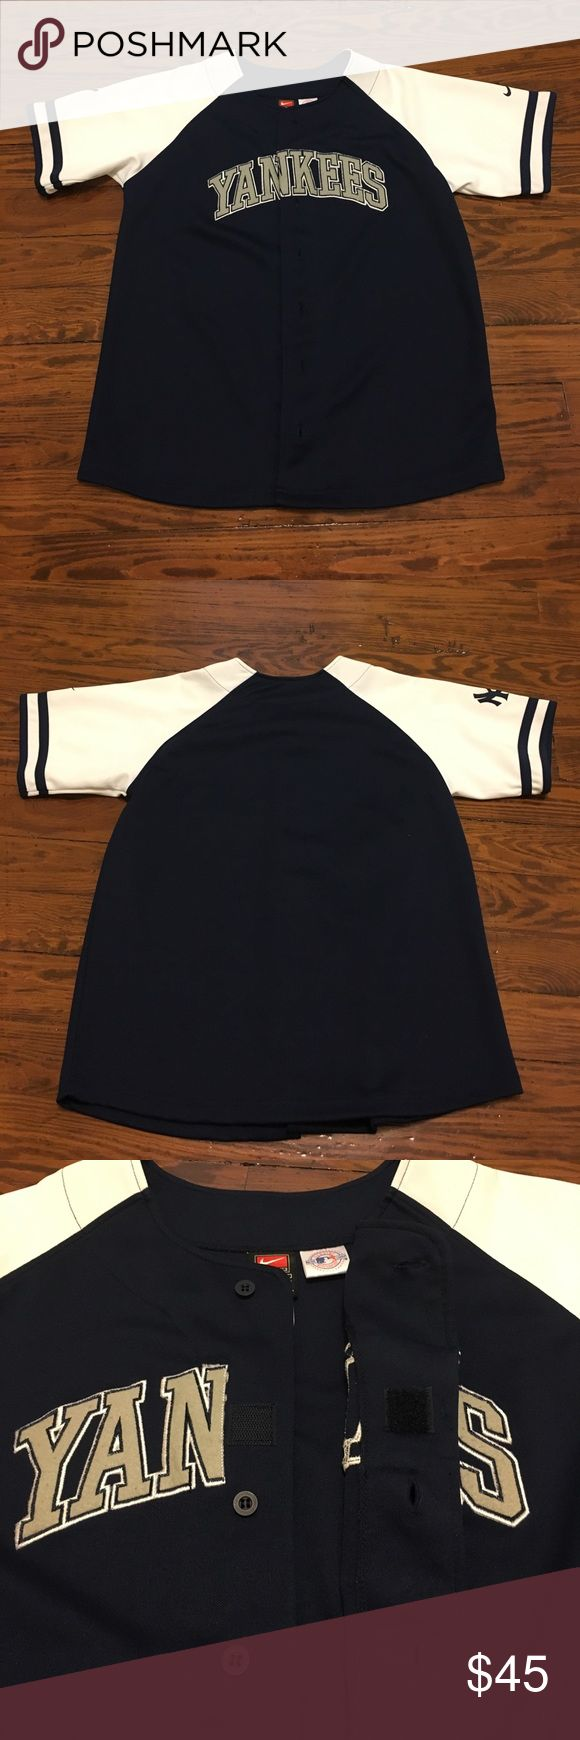 Genuine MLB NY Yankees jersey, mint condition Like new, genuine ML New York Yankees jersey. Classic navy blue & white with grey lettering.  Button closure with one Velcro piece to line up lettering.  Unisex, youth large, worn as woman's small. Major League Shirts & Tops